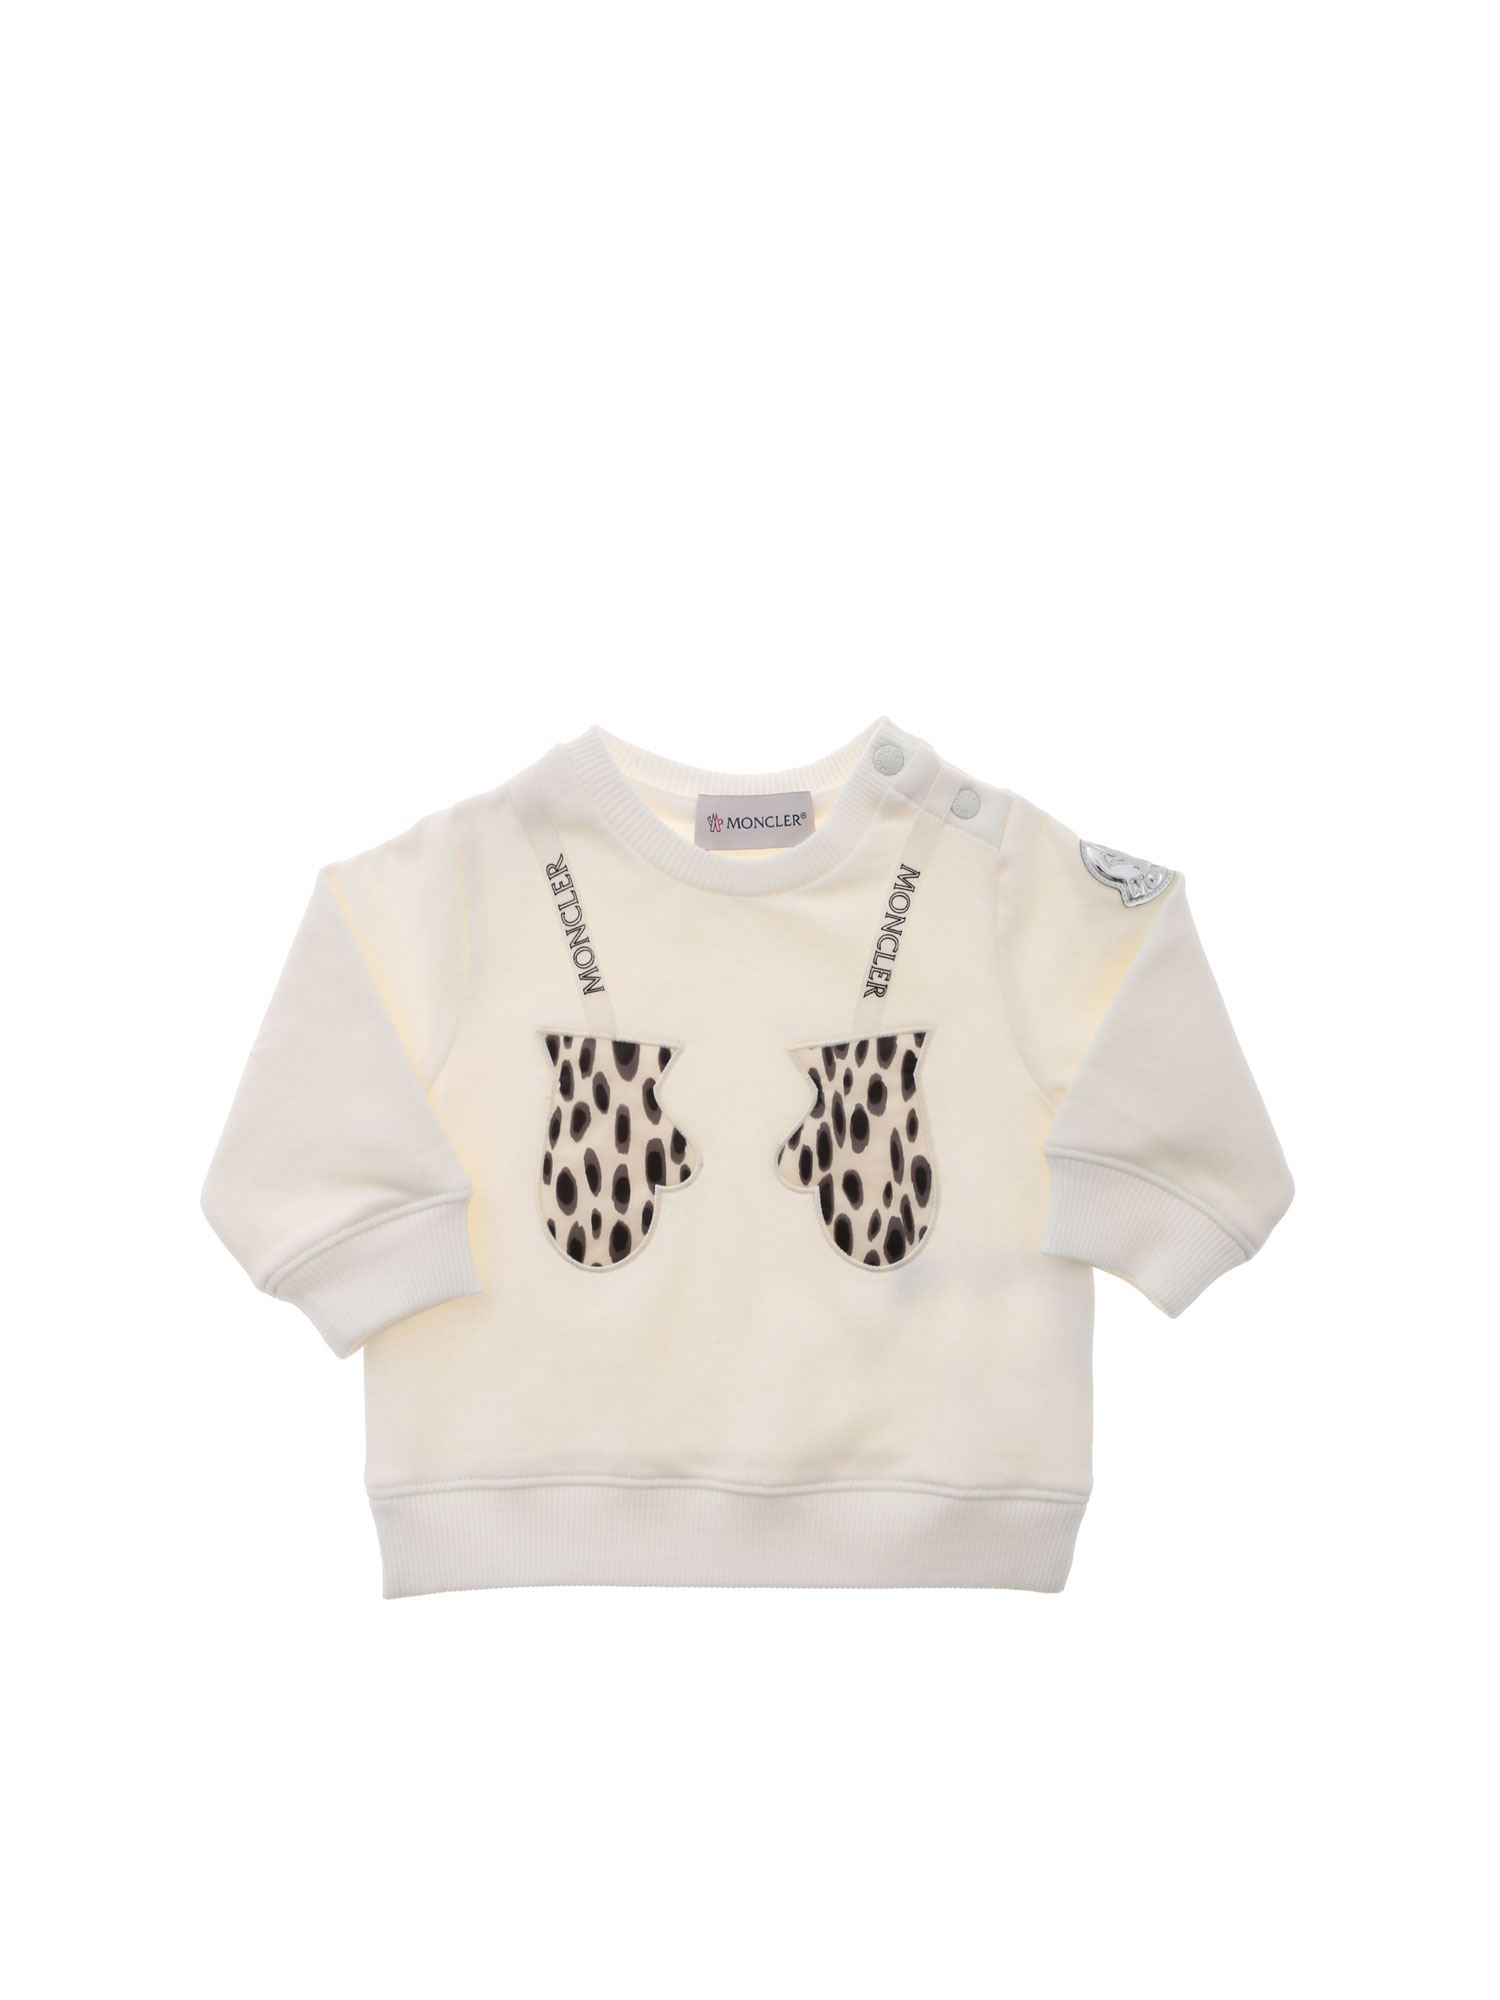 Moncler Jr ANIMAL PRINT PATCH SWEATSHIRT IN IVORY COLOR